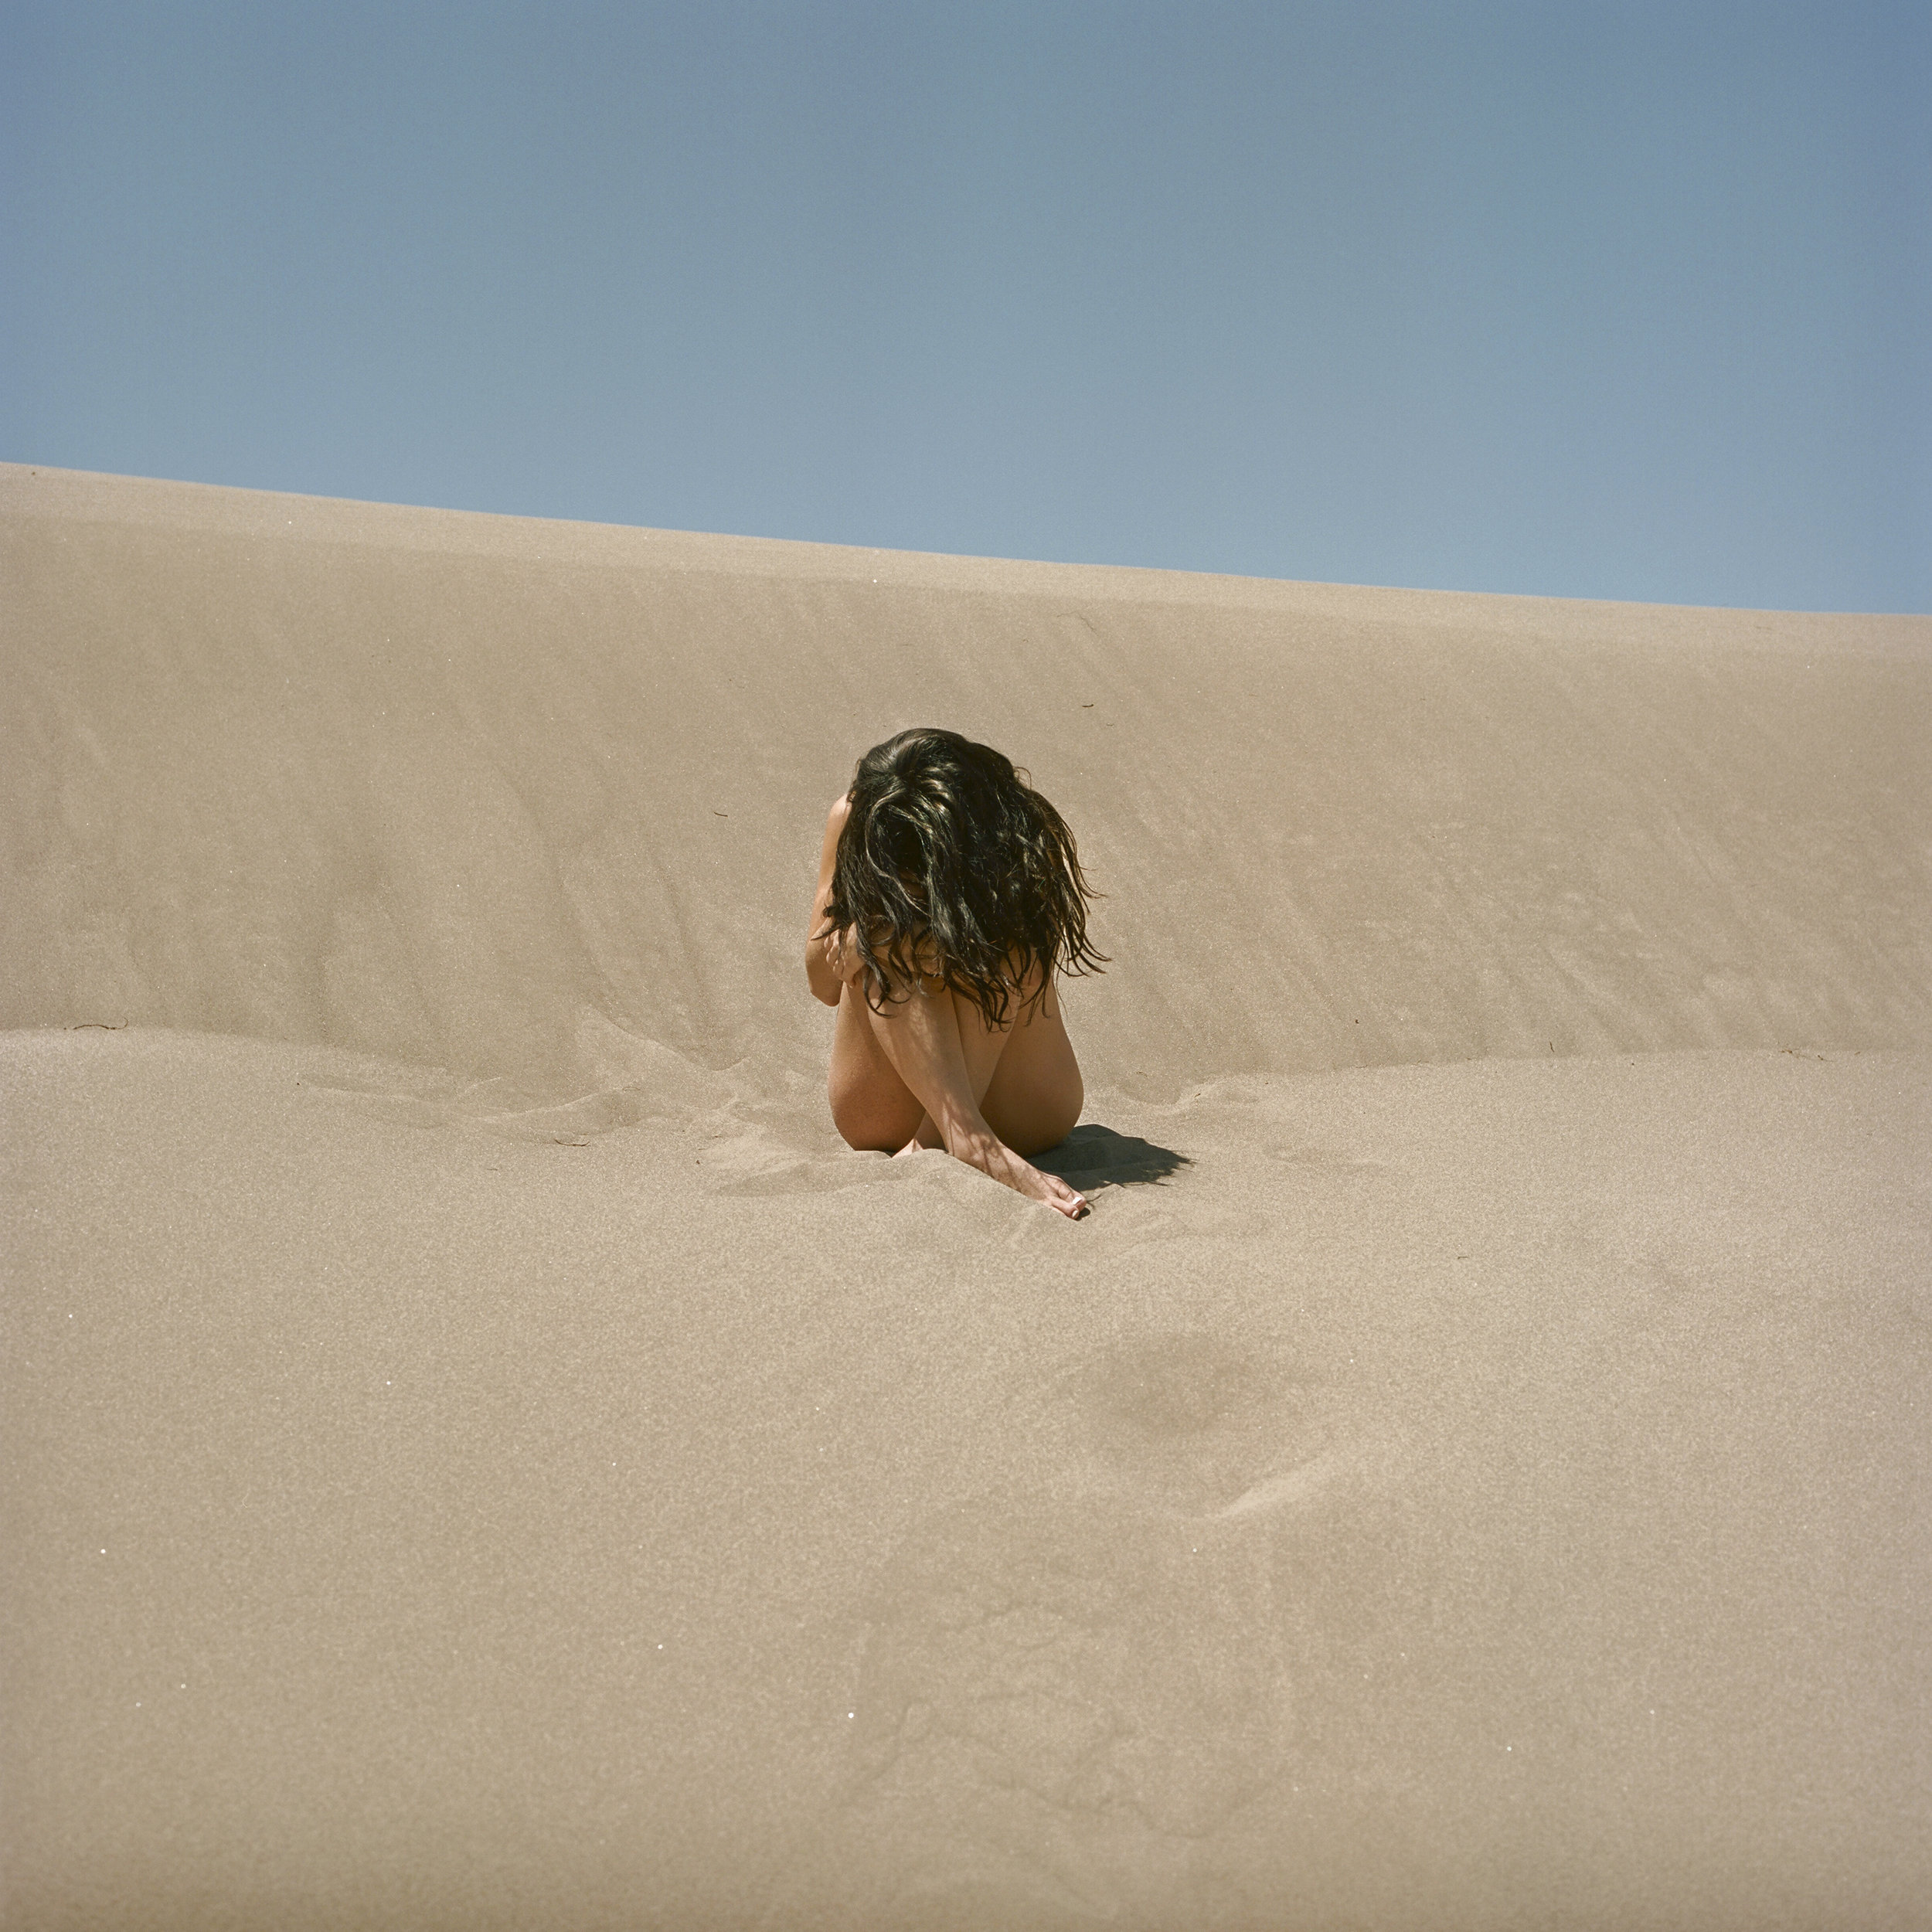 Christina-Arza-Self-Portrait-Sand-Dunes-Colorado-Photography.JPG